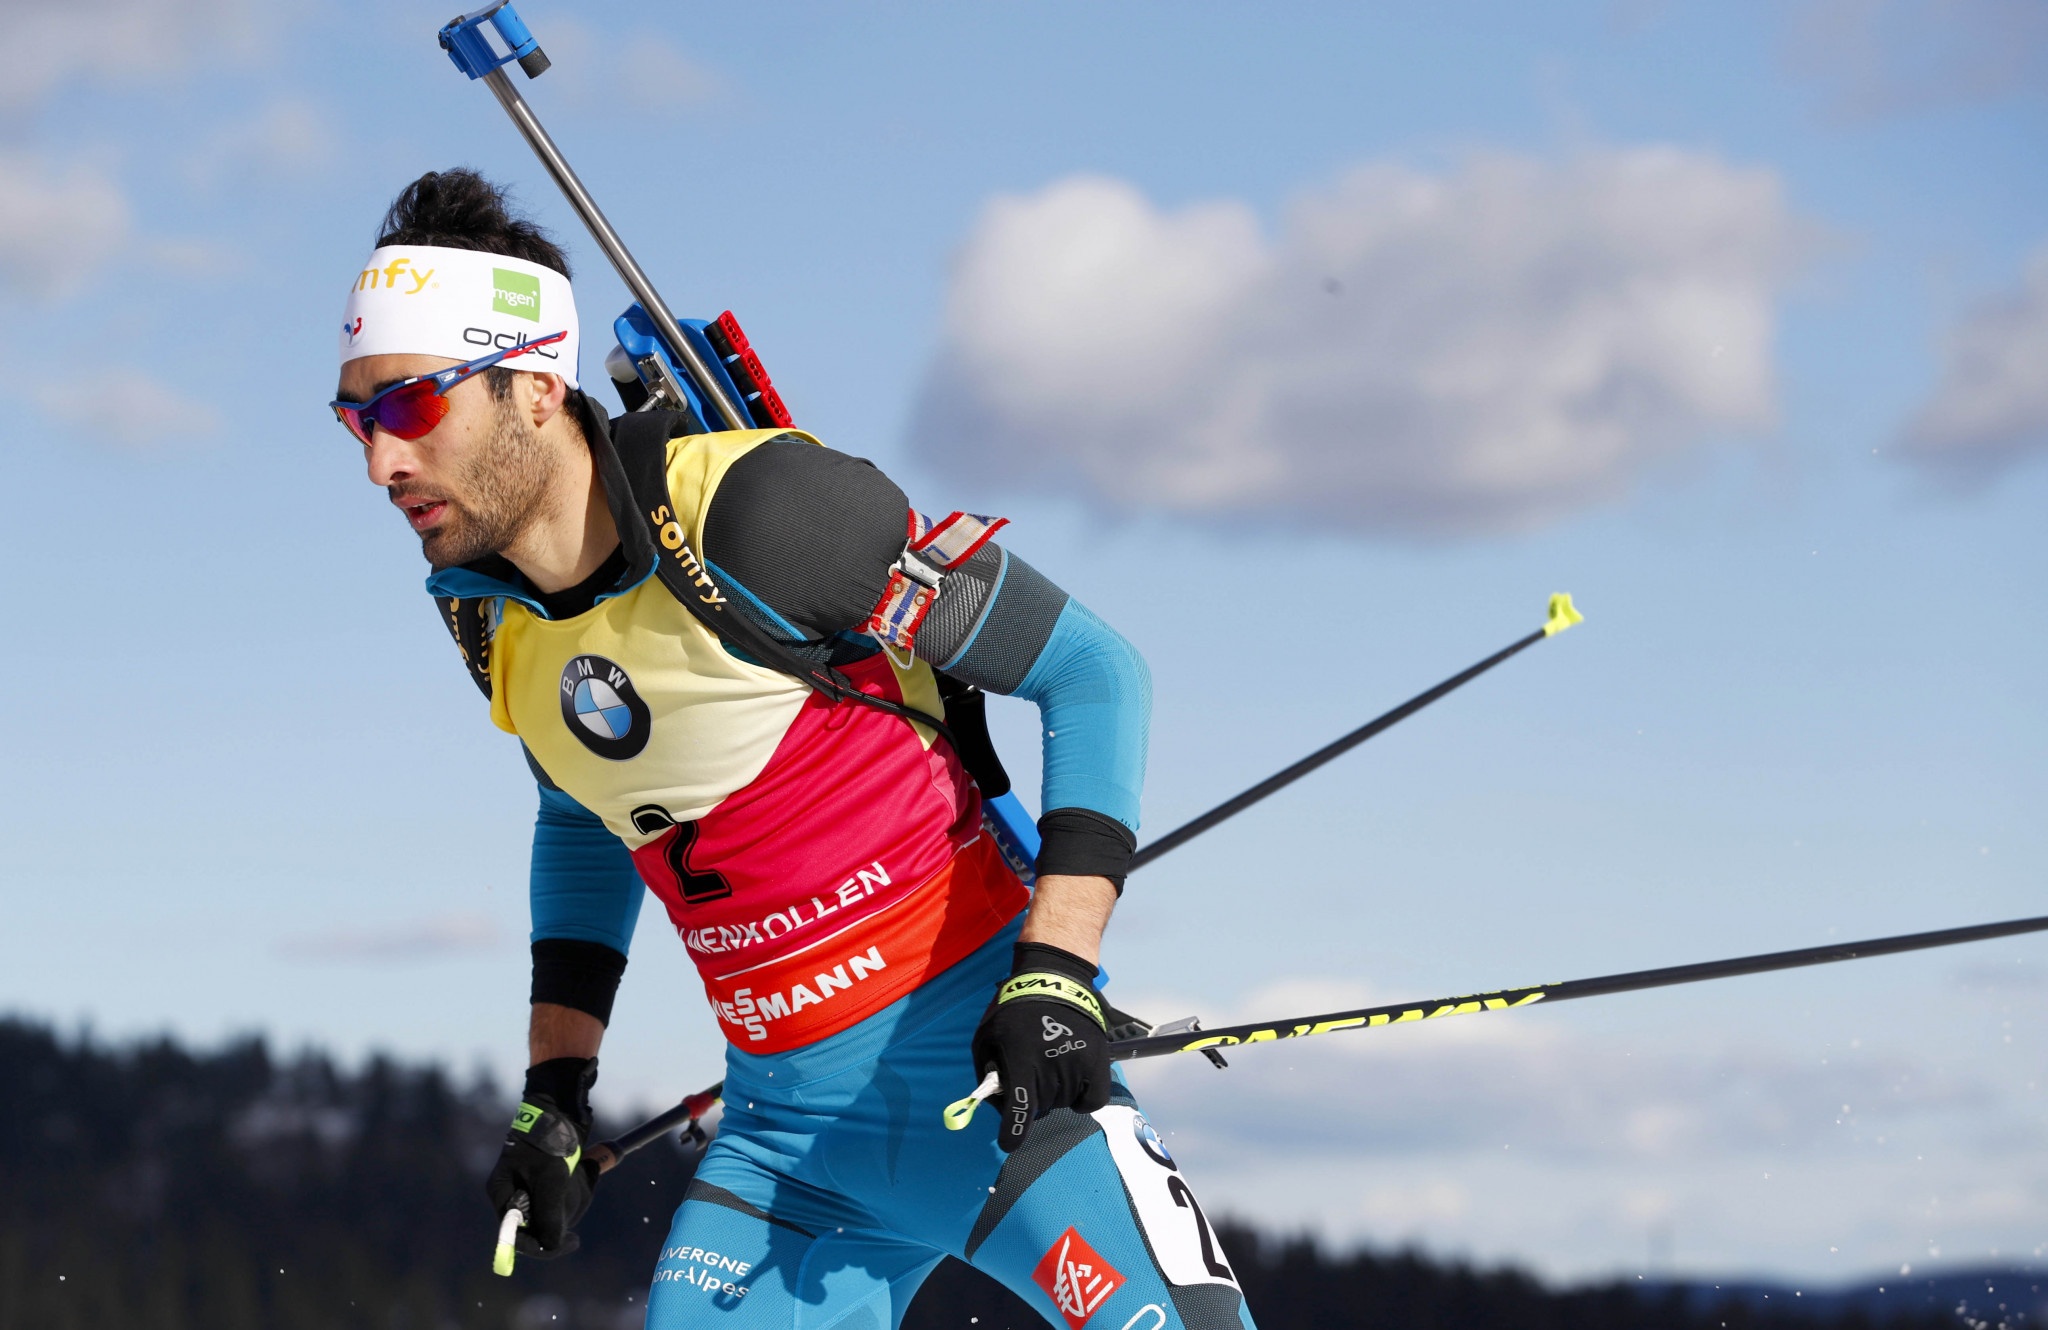 Why Martan Fourcade is so cool)))))))) 61